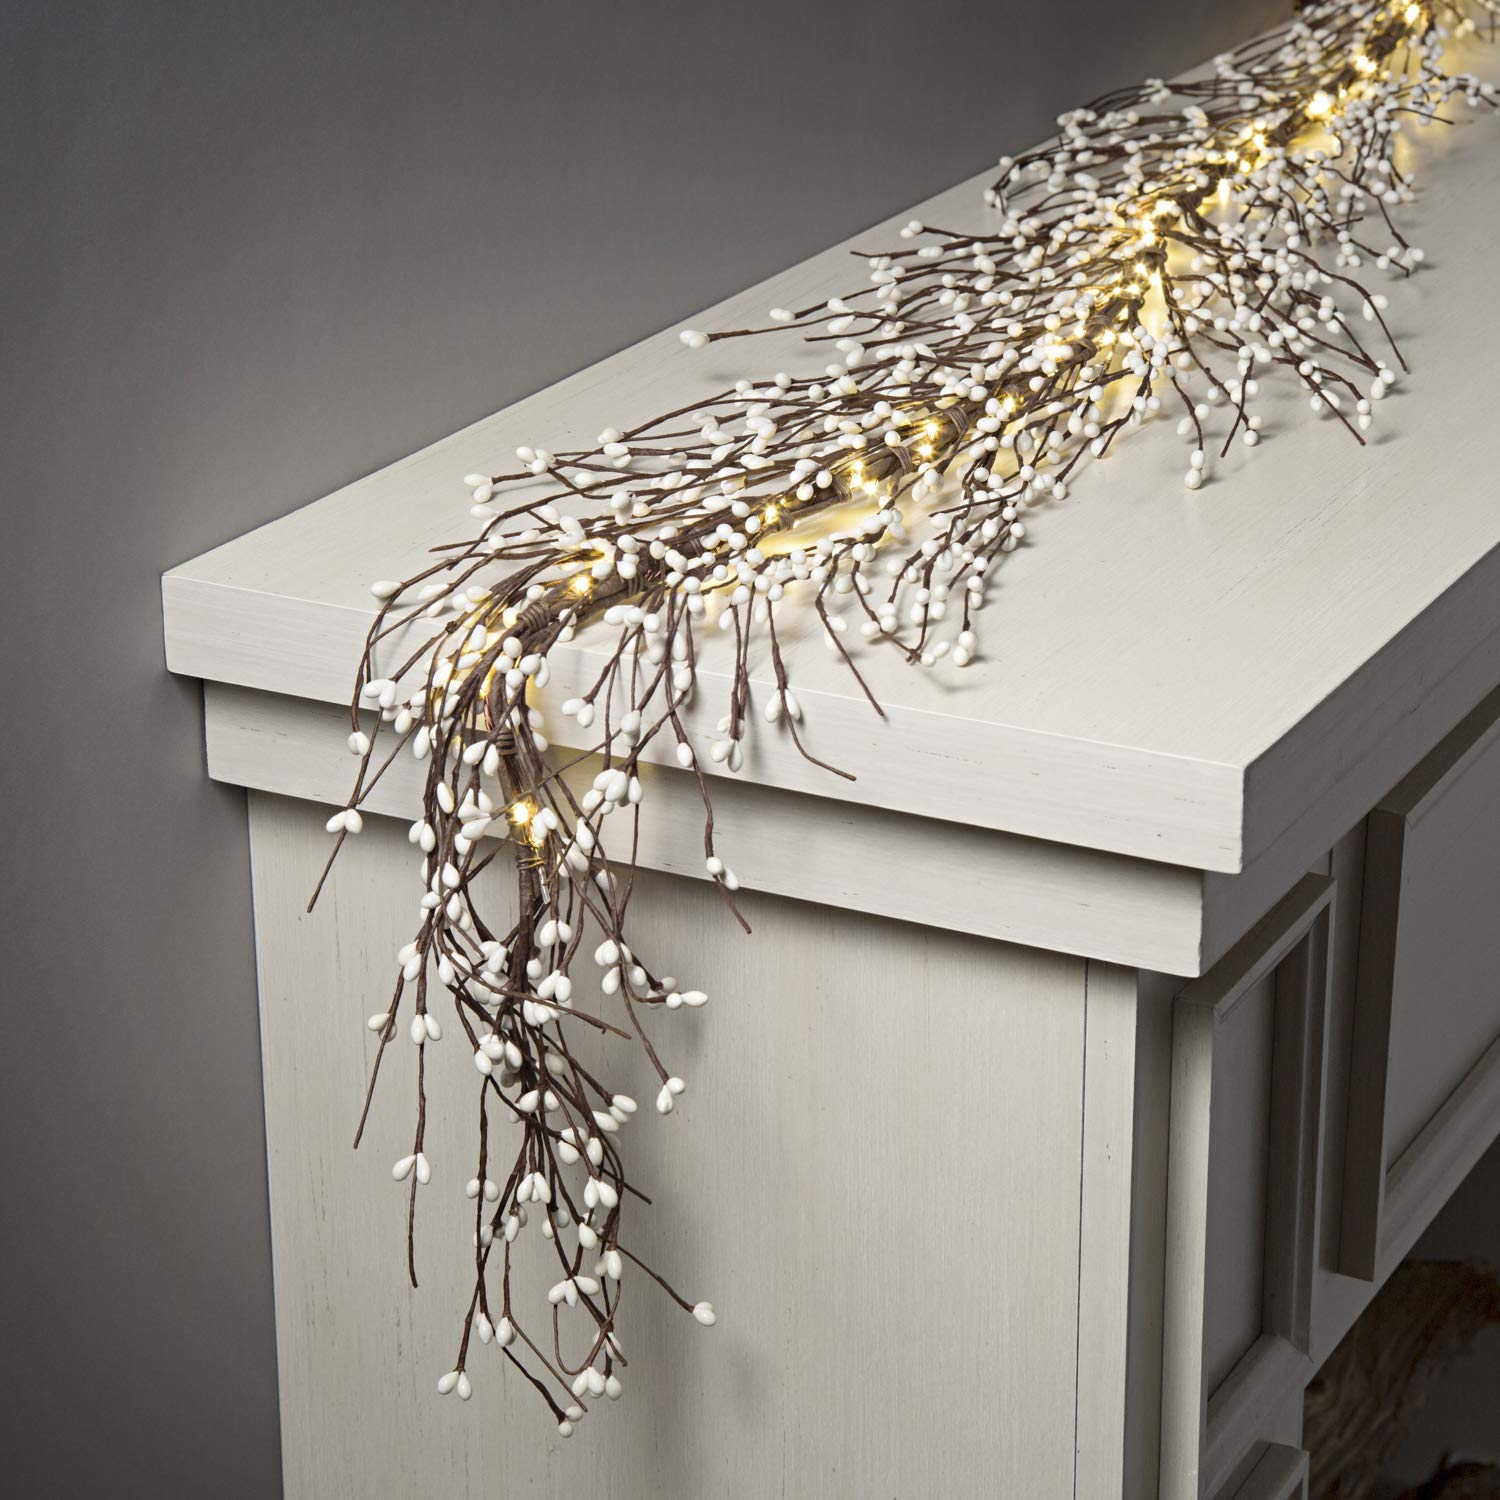 (Renewed) Pip Berry Garland with 100 LED Lights - 5 Feet Long, Brown Twig Branches with White Berries, Primitive Style, for Spring and Easter Decor, Battery Powered, Timer Included